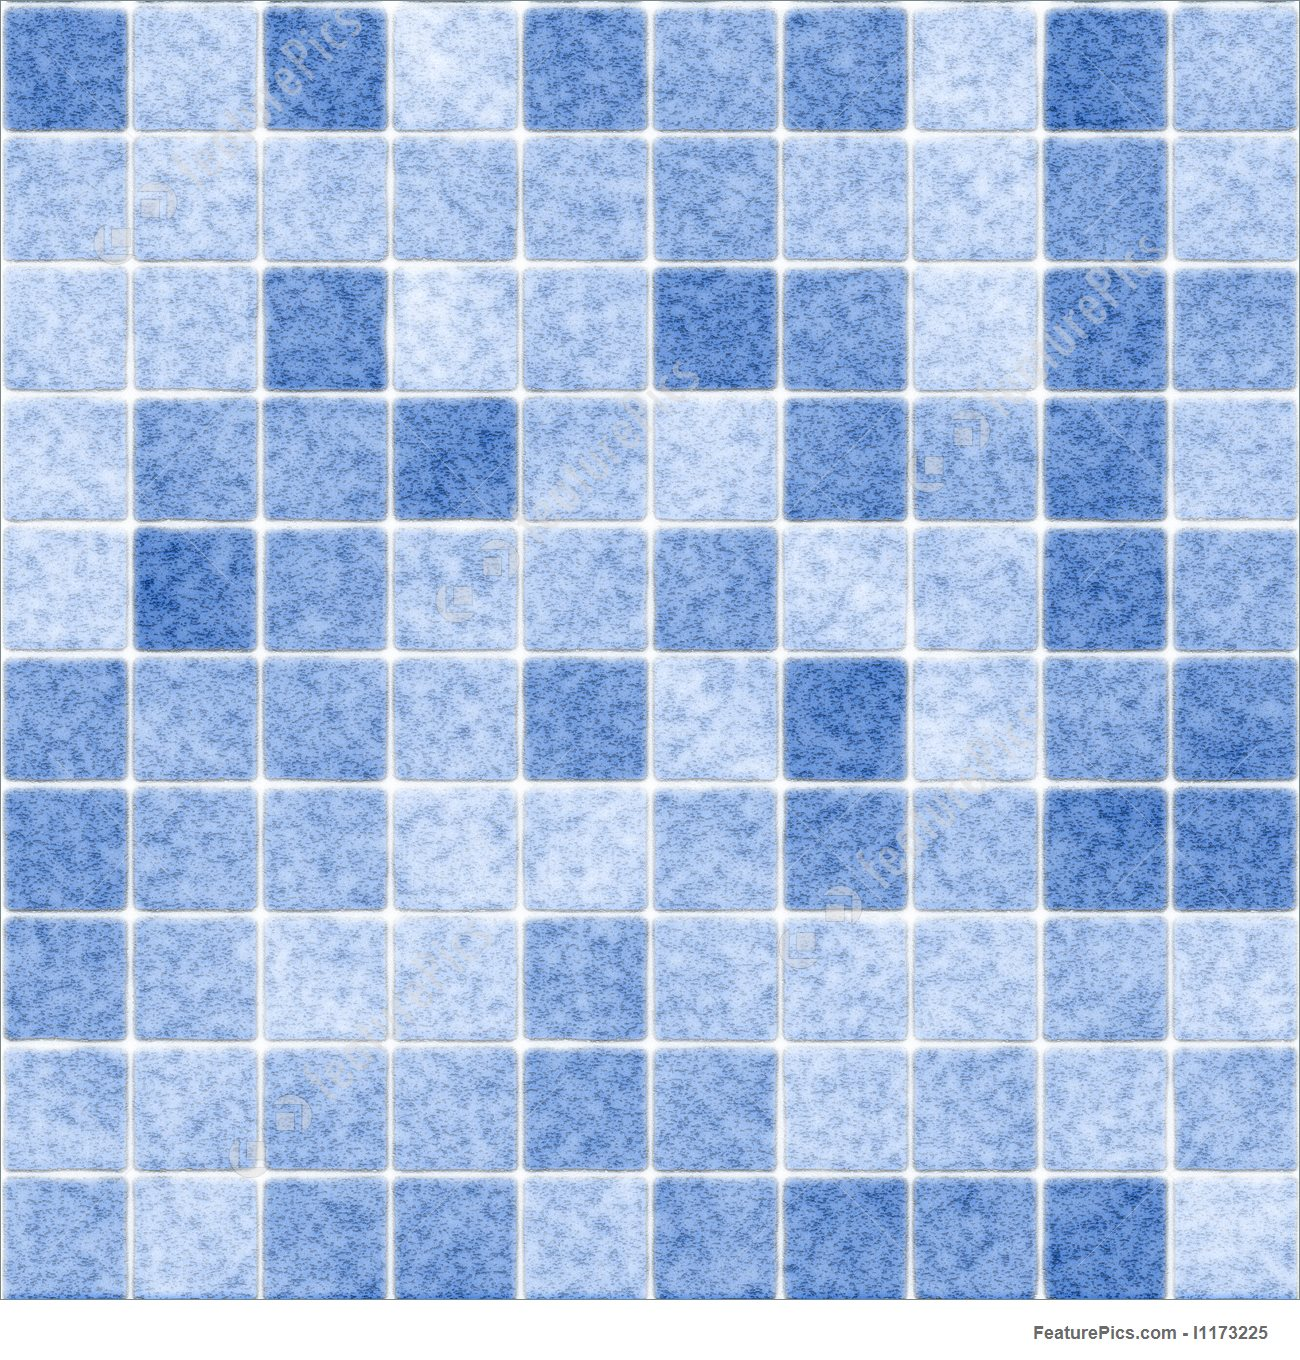 seamless tile image in shades of blue